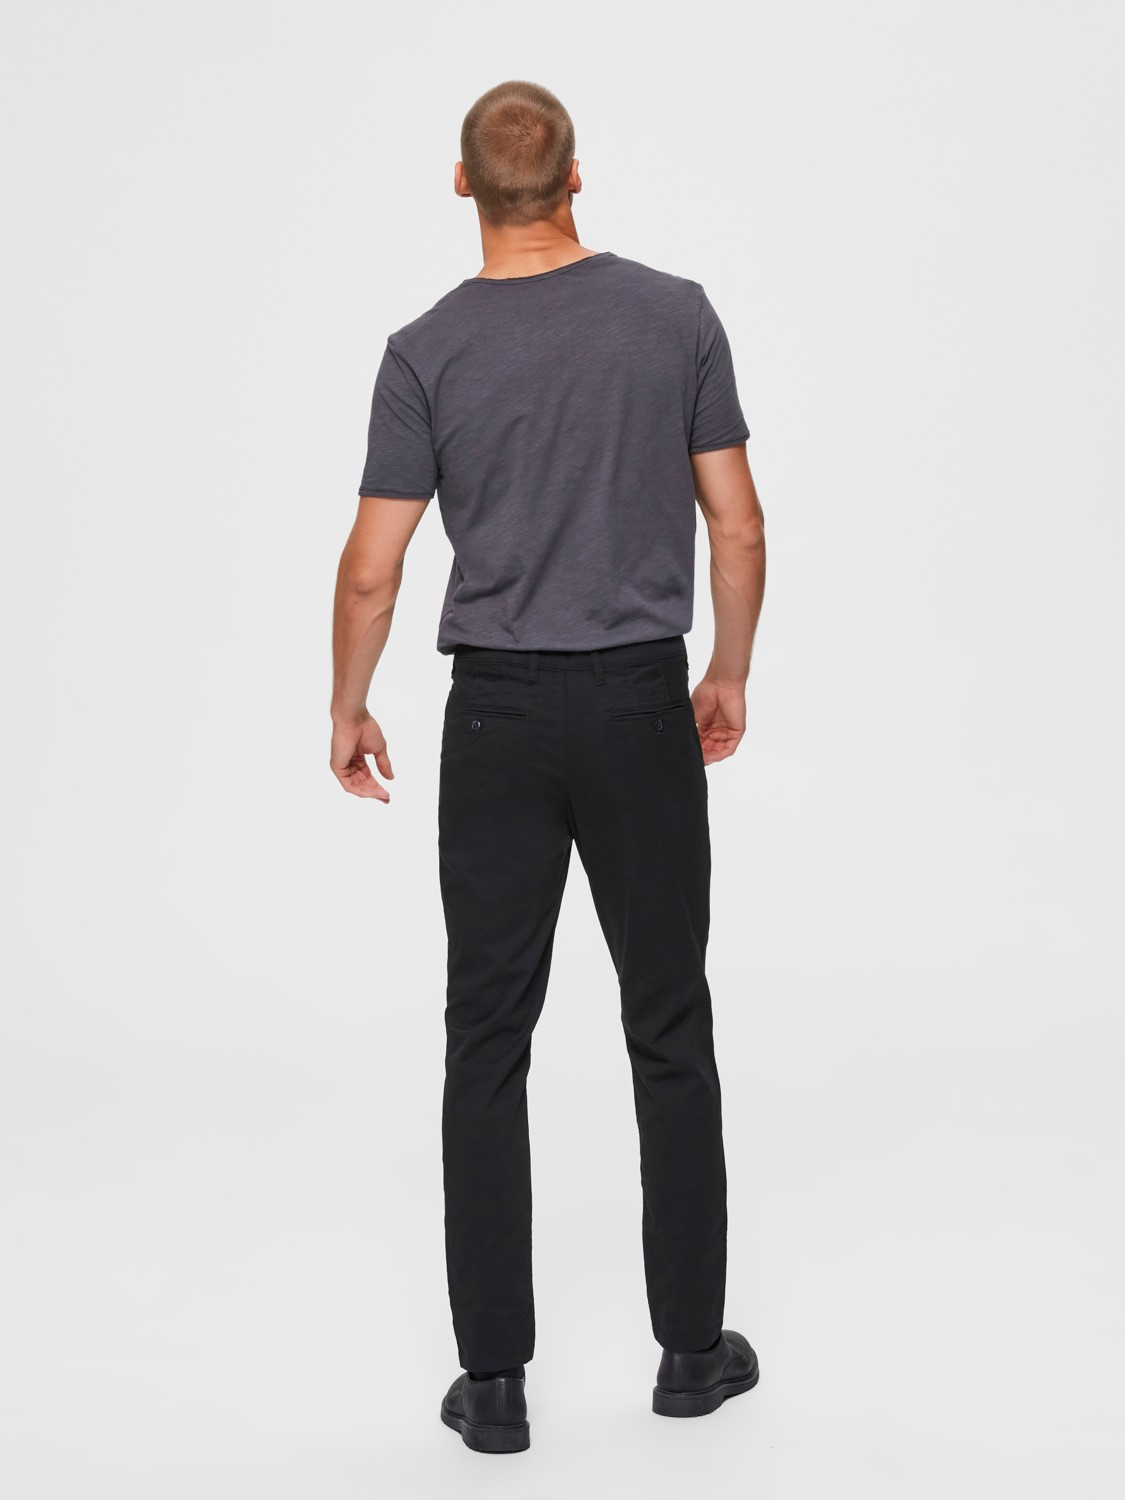 Selected Chino´s flex pants black | Gate36 Hobro